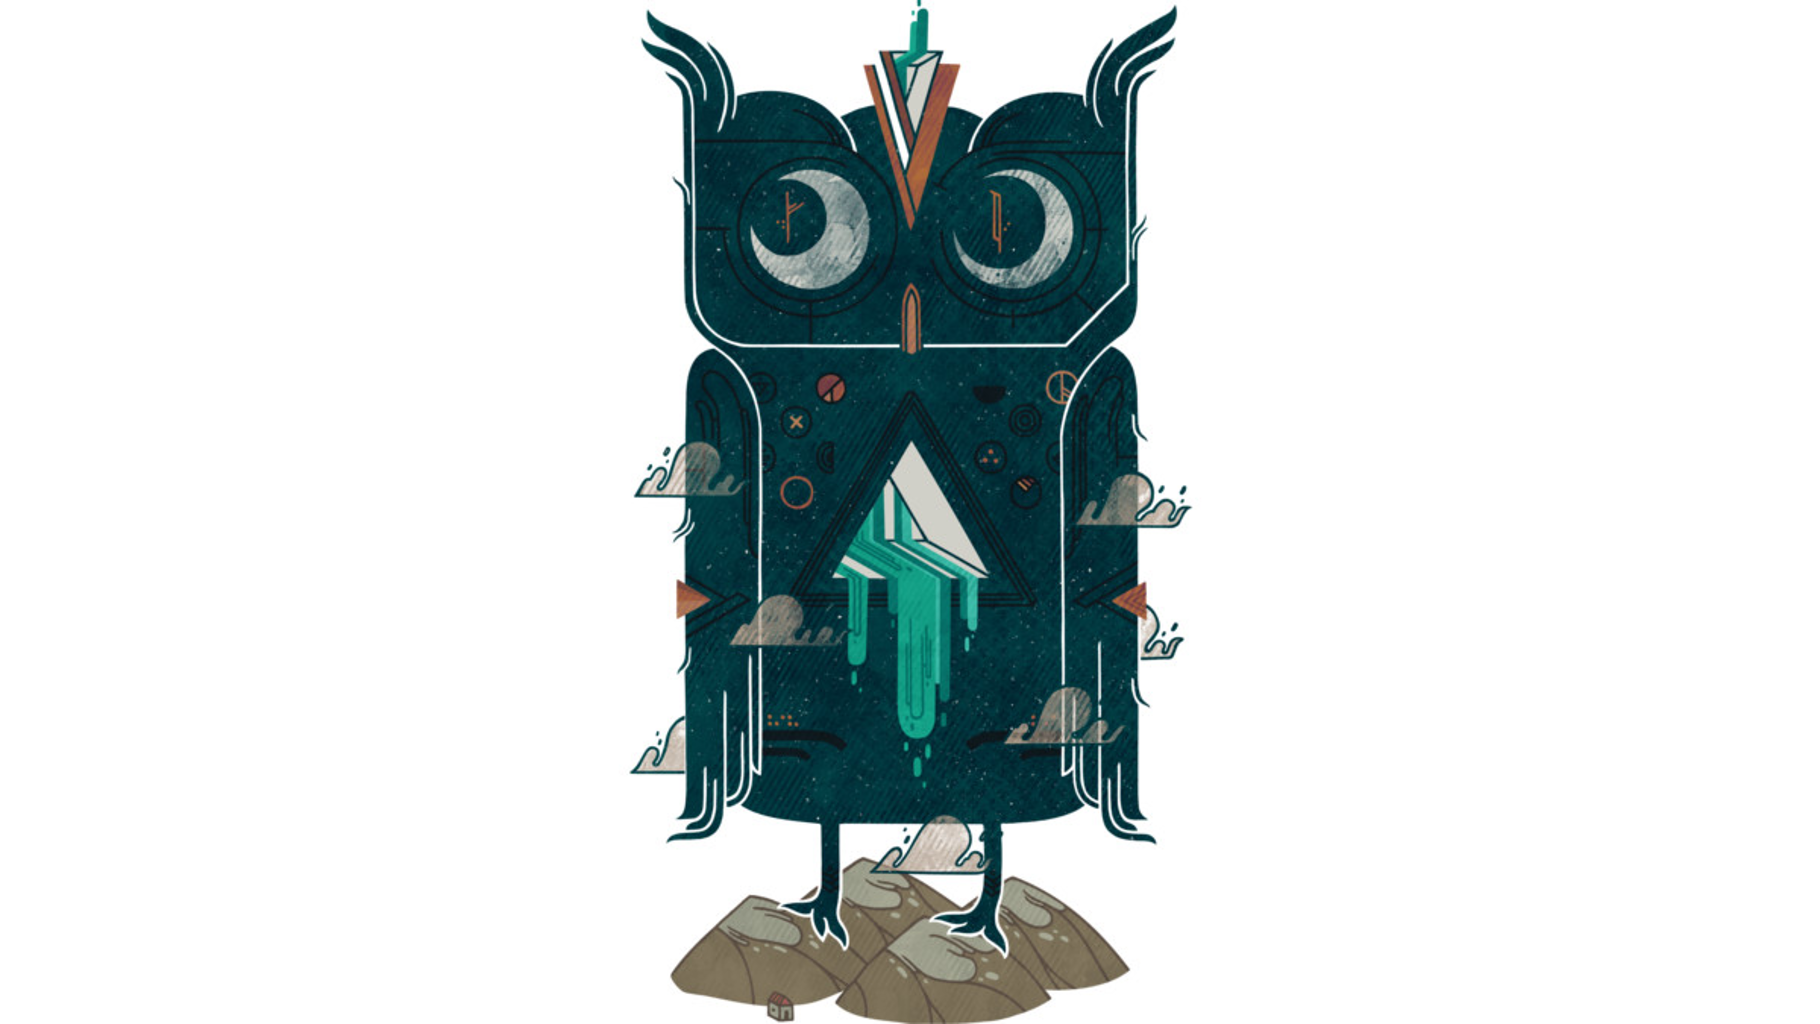 Design by Humans: Night Owl